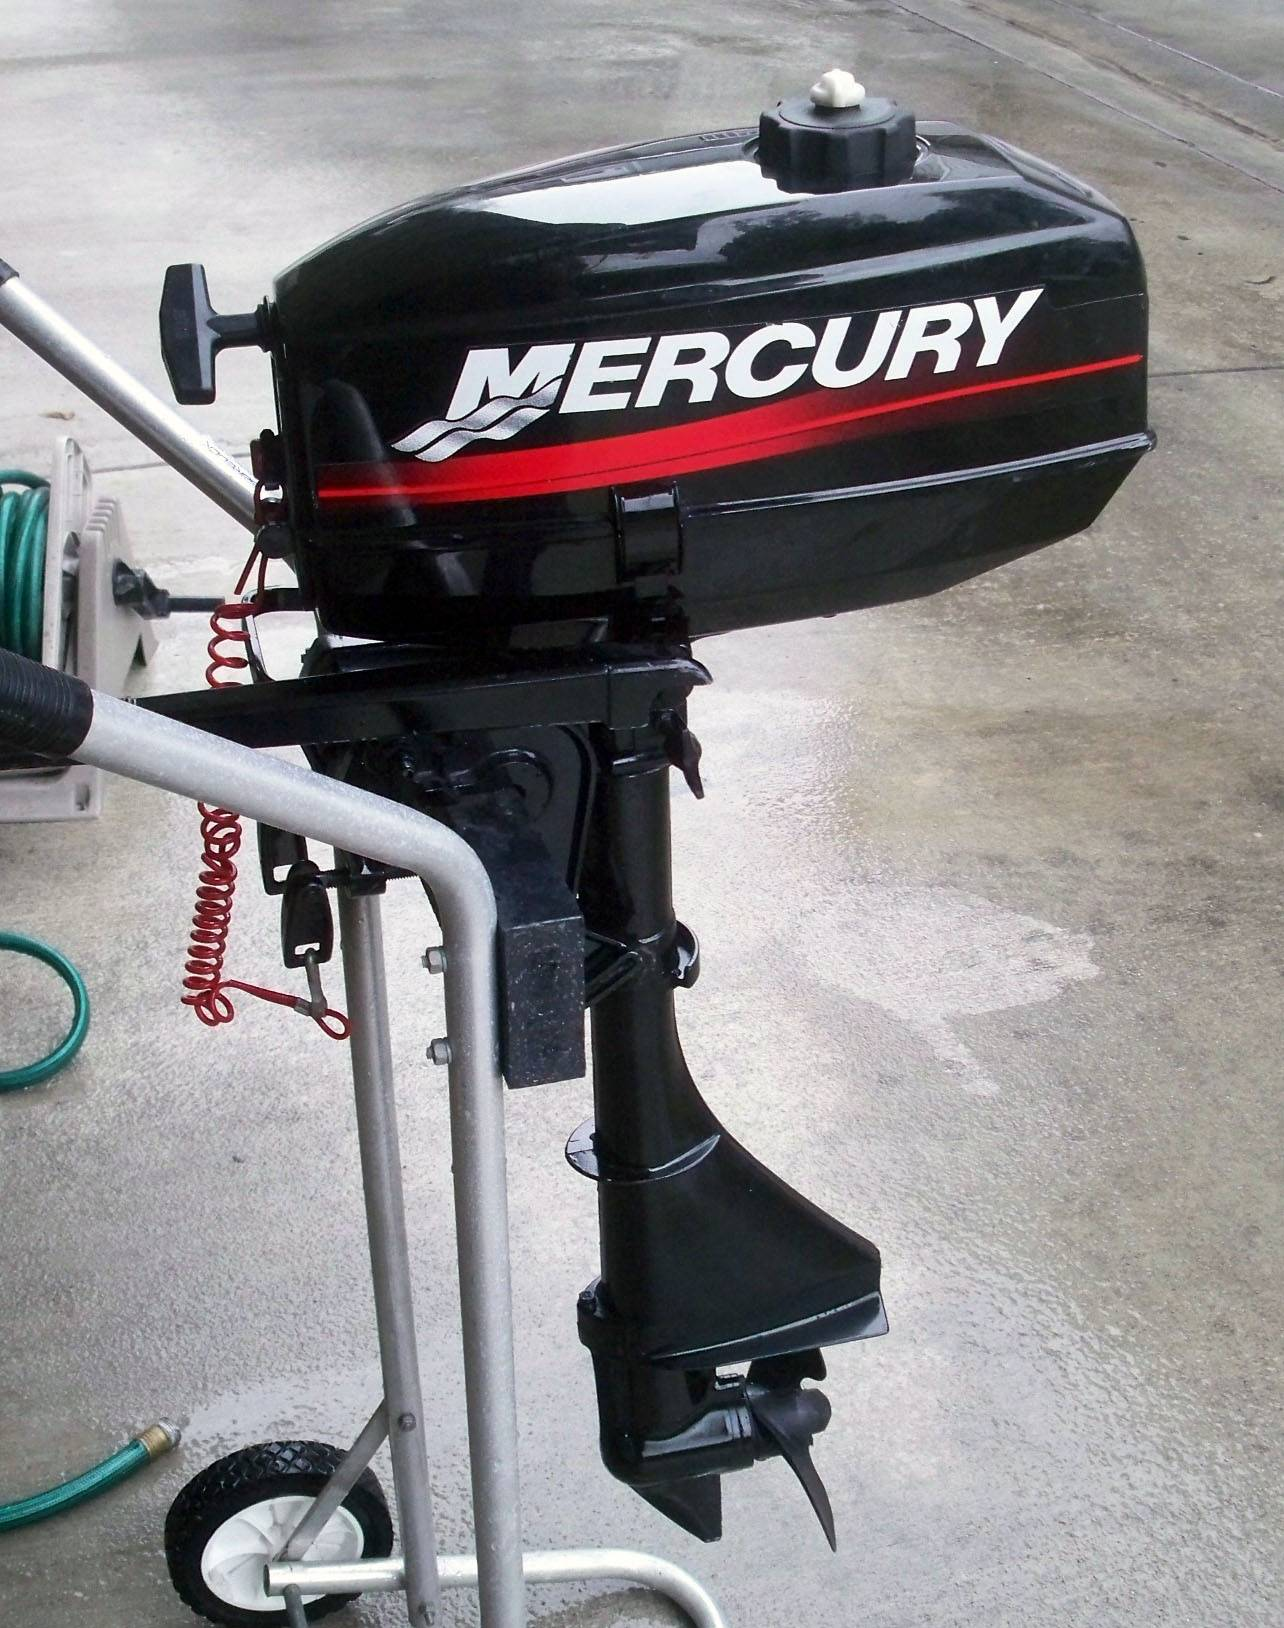 Mercury outboard motor 1 pull start year 2001 plus 5hp motor